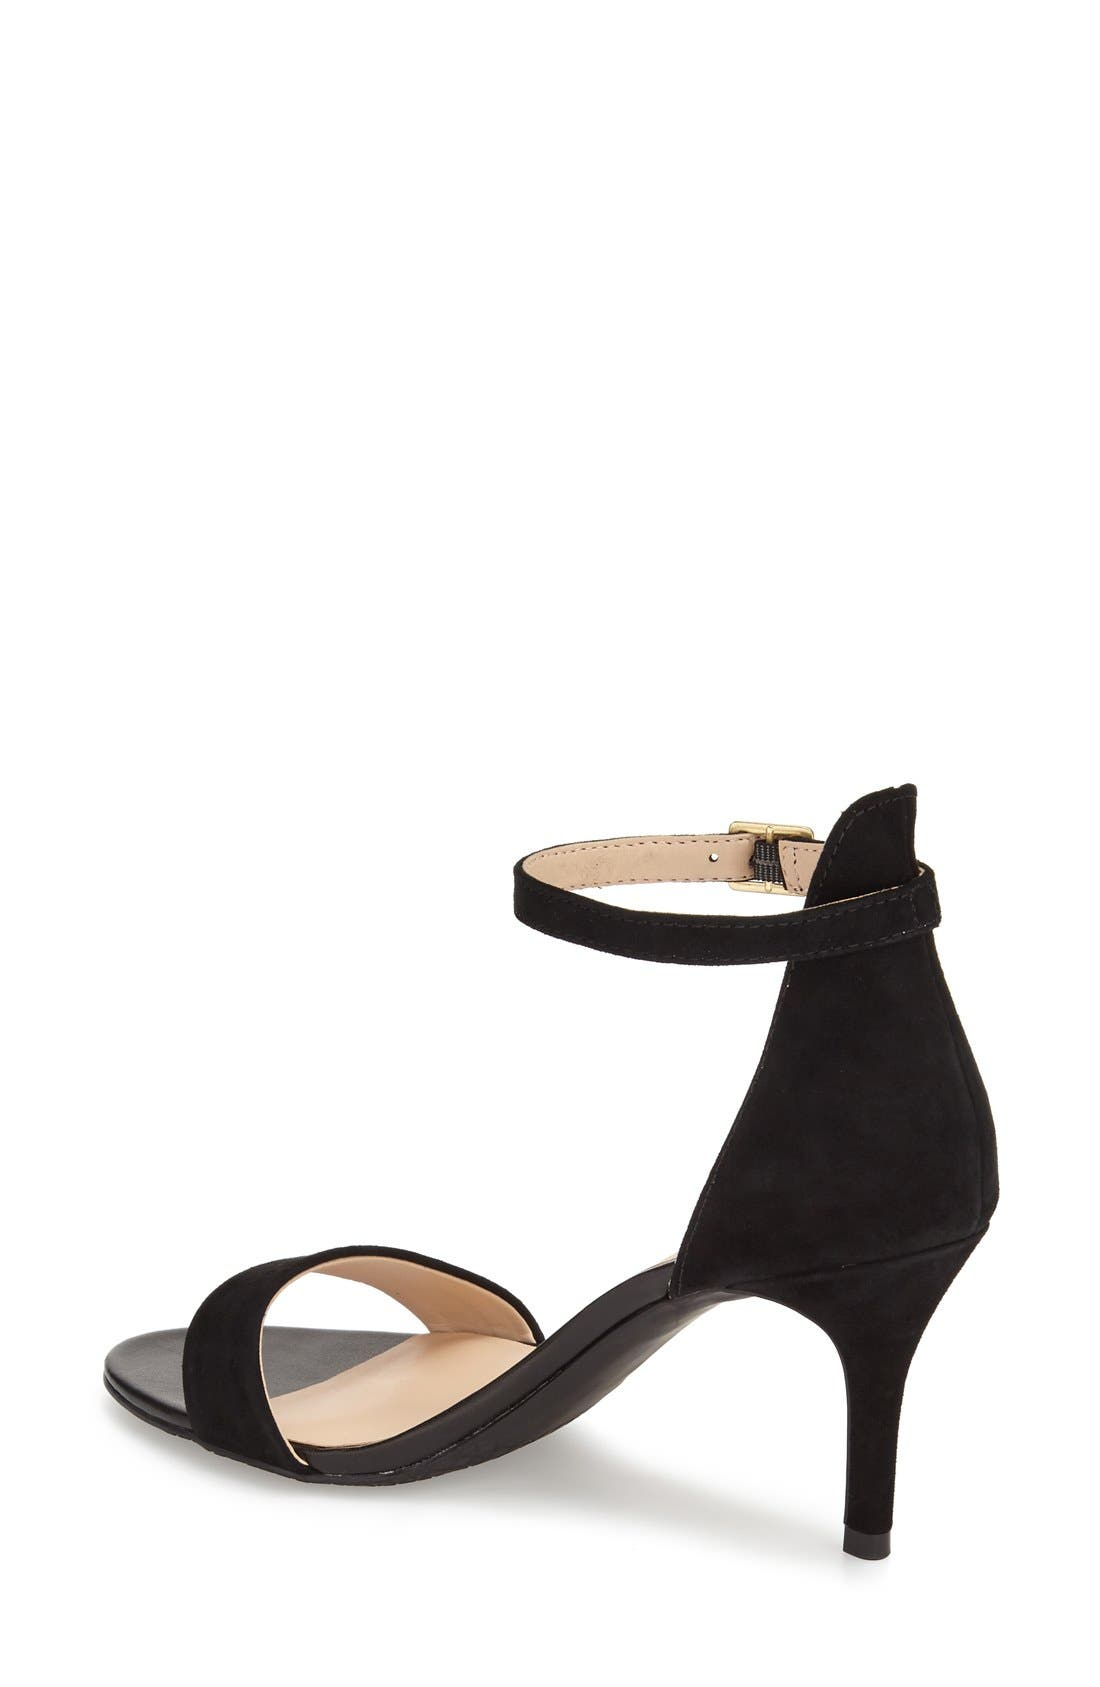 'Luminate' Open Toe Dress Sandal,                             Alternate thumbnail 65, color,